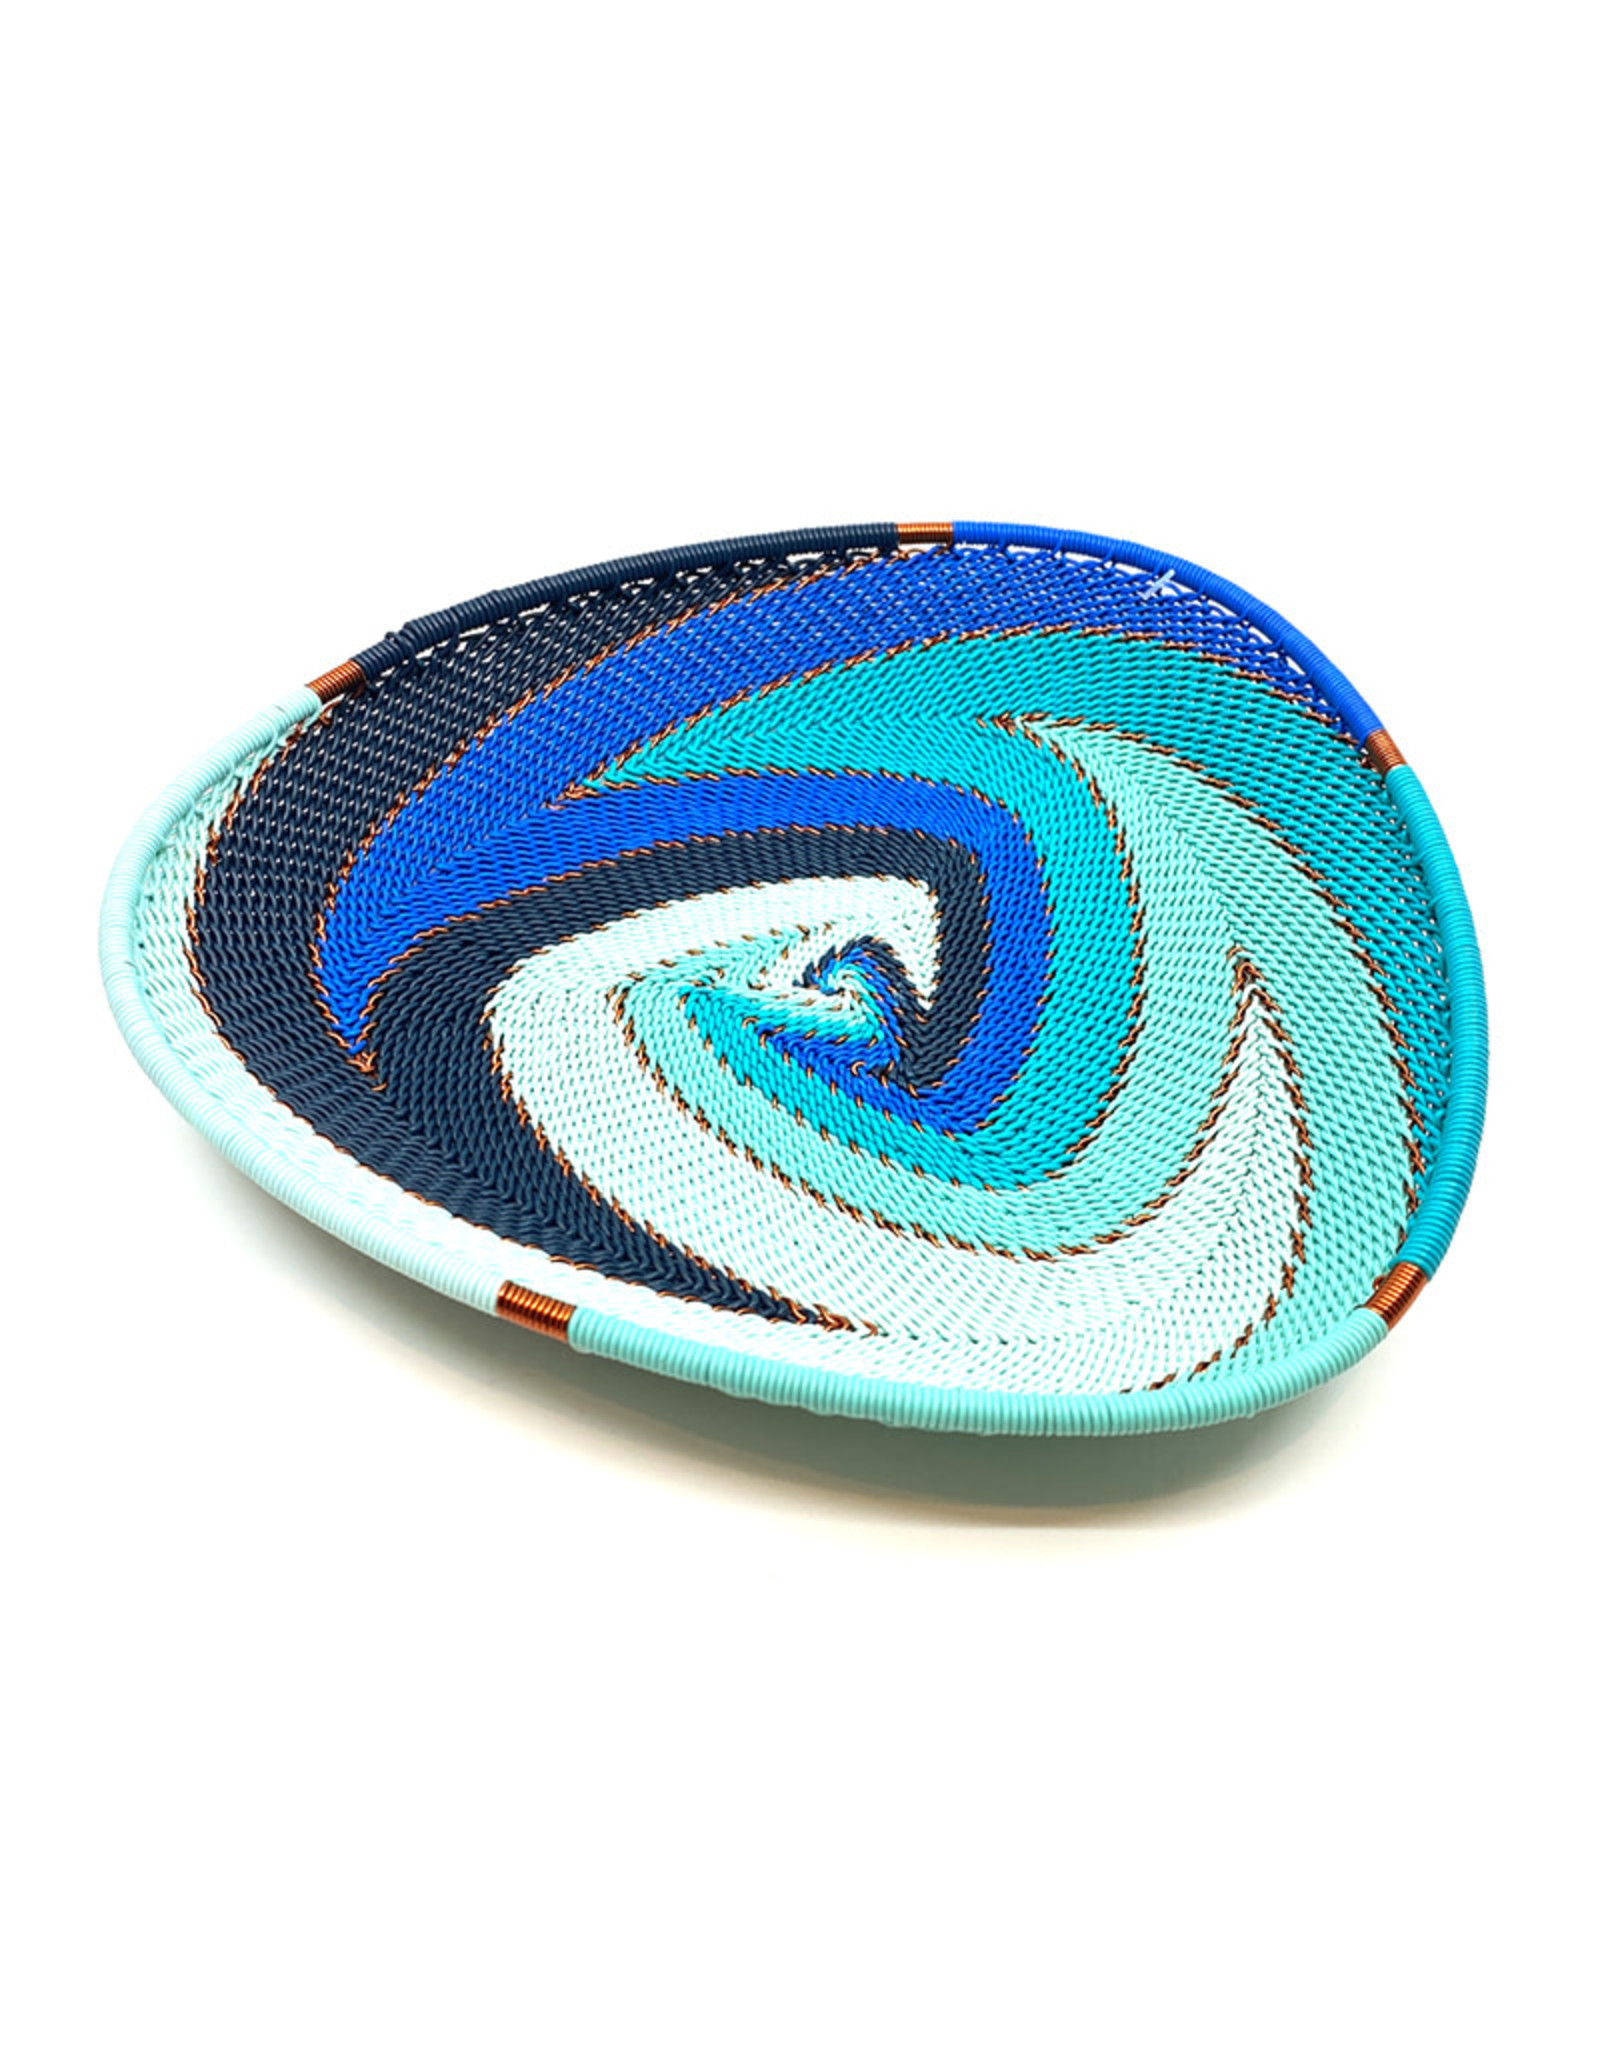 BASKETS OF AFRICA SMALL OCEAN TRIANGLE PLATE